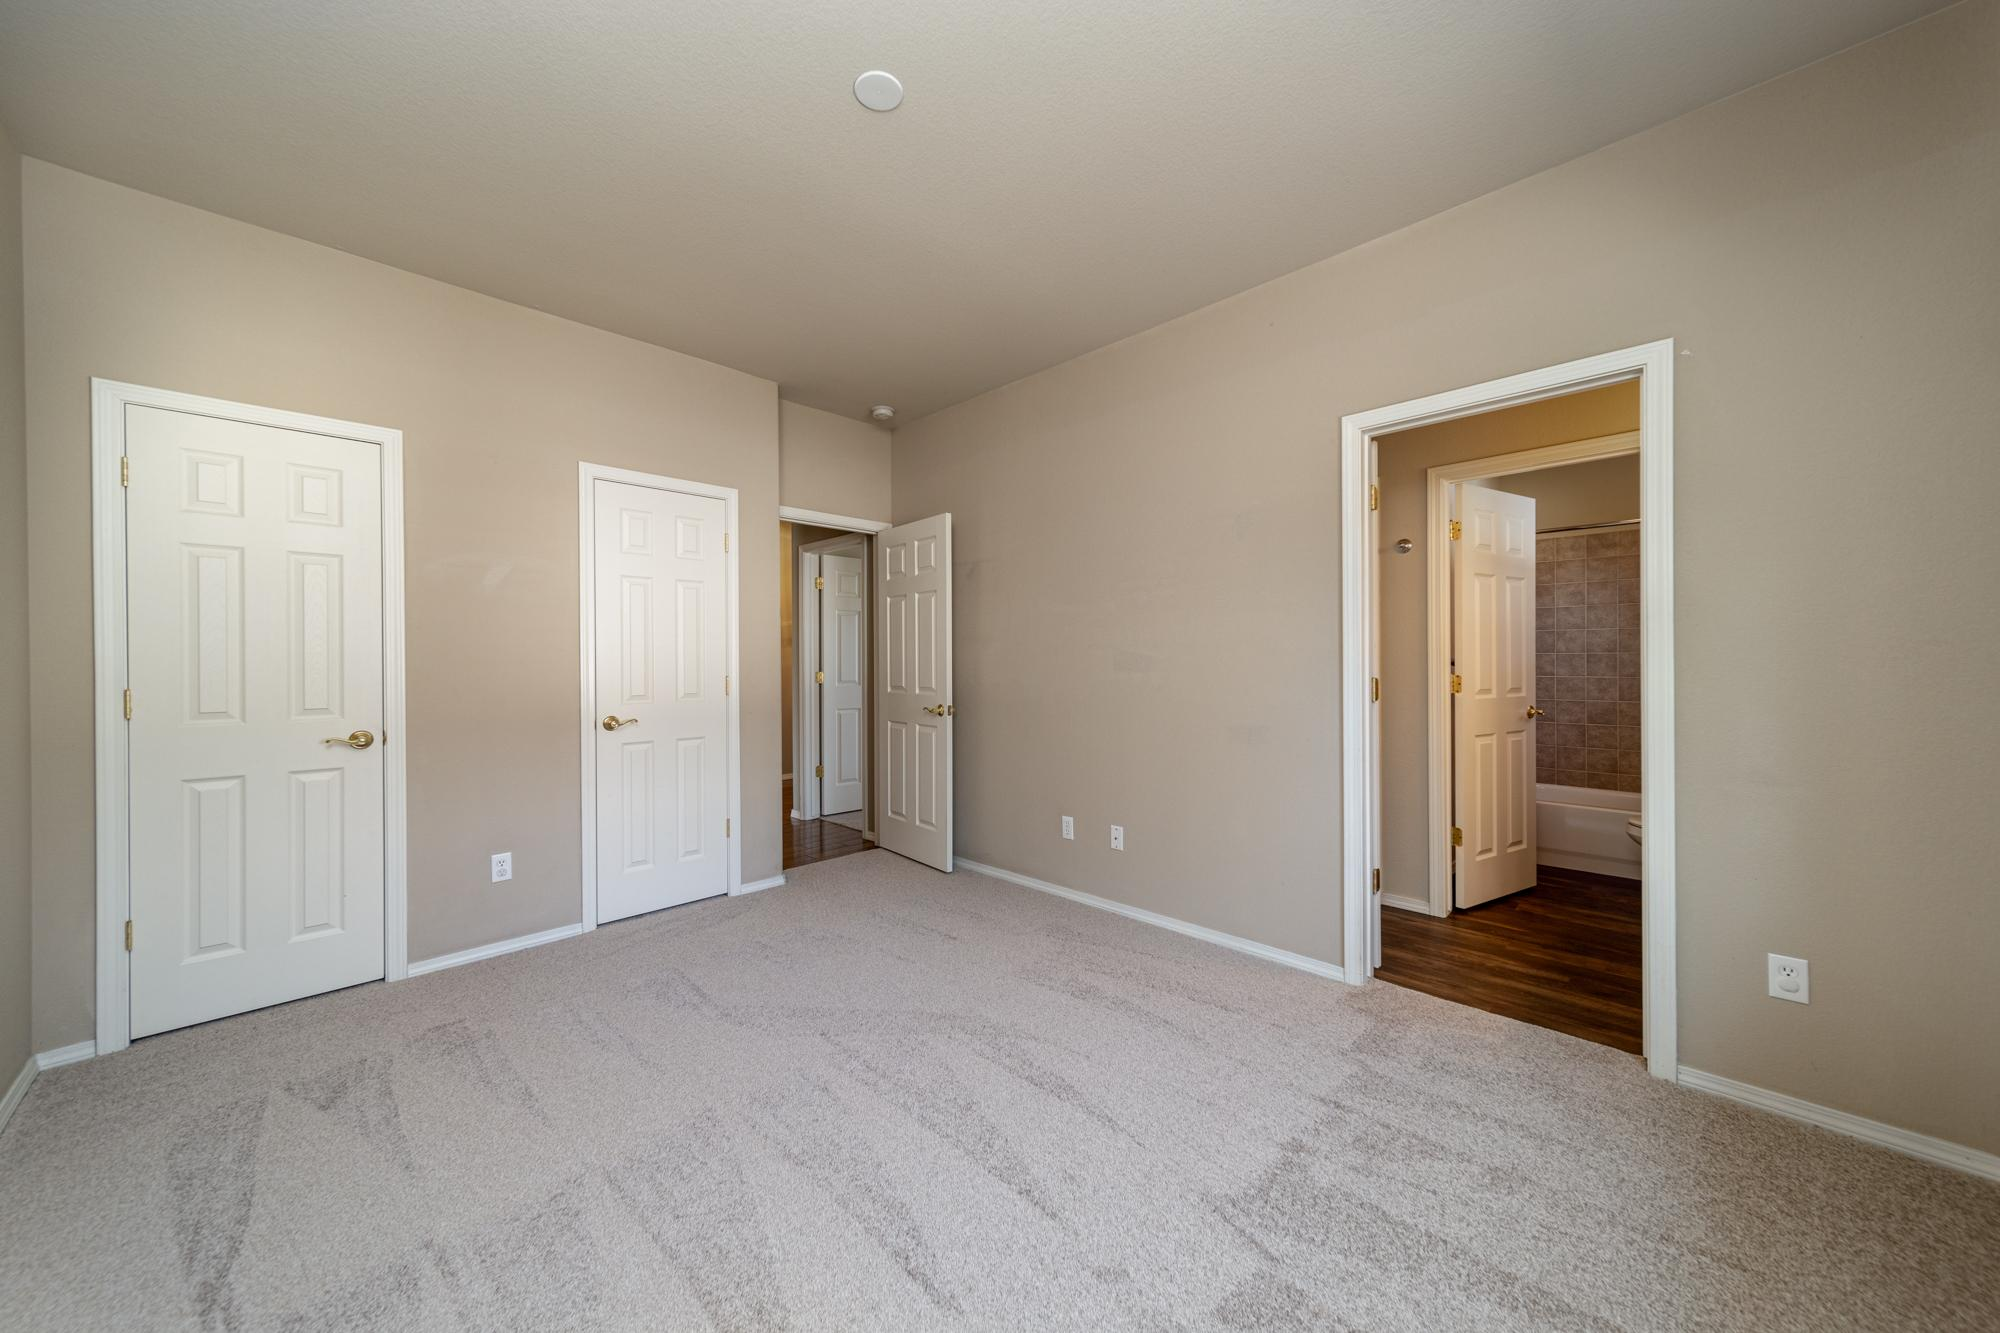 Bedroom with Closet - 3731 Buffalo Ln Montrose, CO 81403 - Atha Team Golf Property